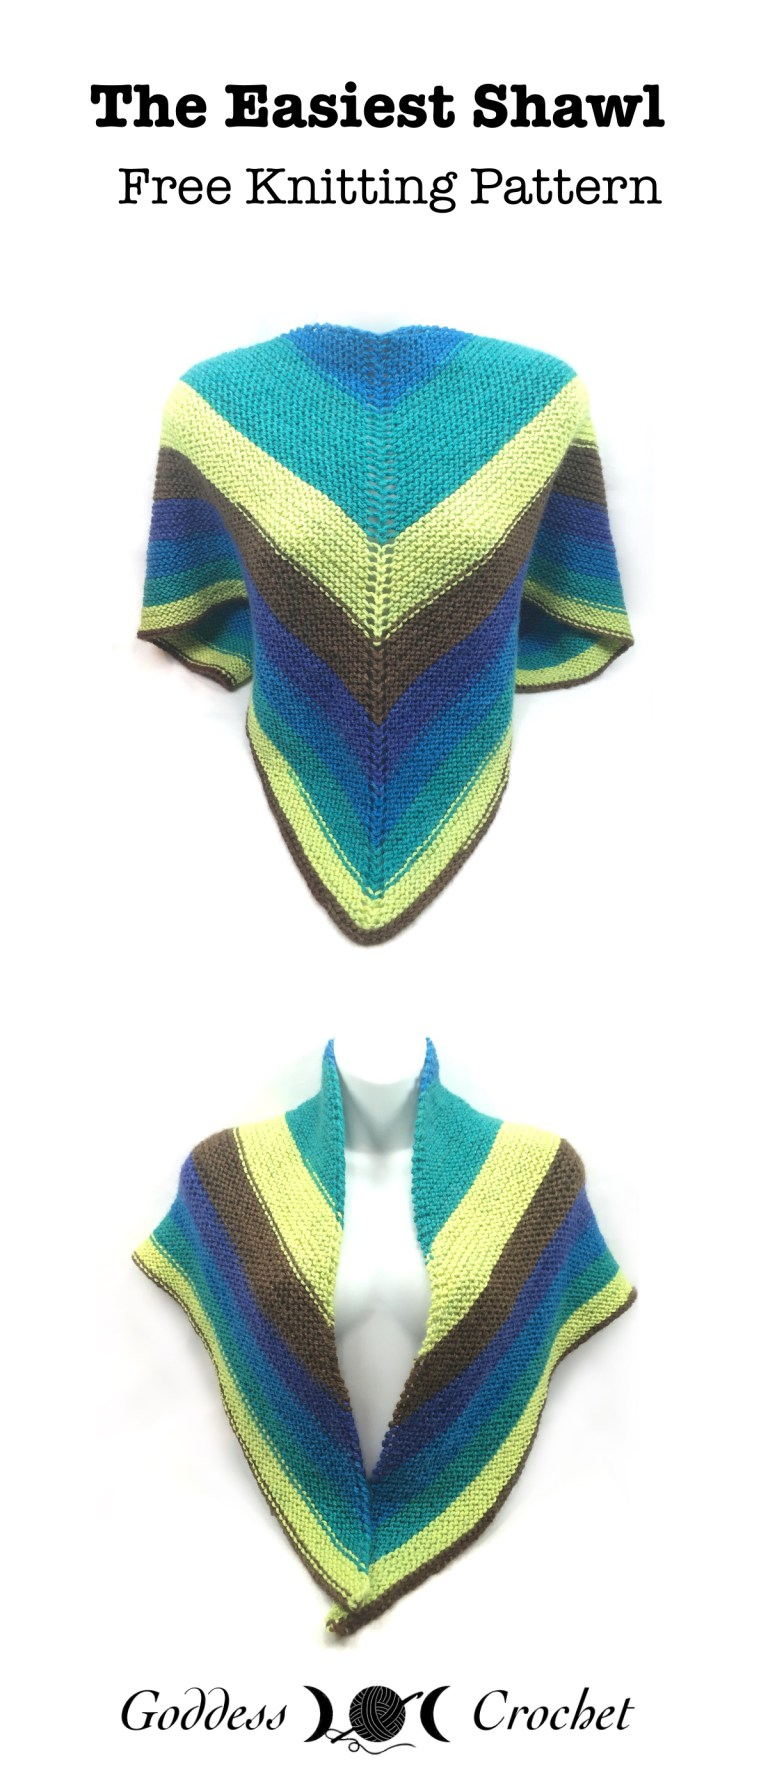 Do you need Caron Cakes pattern ideas? Stop here first